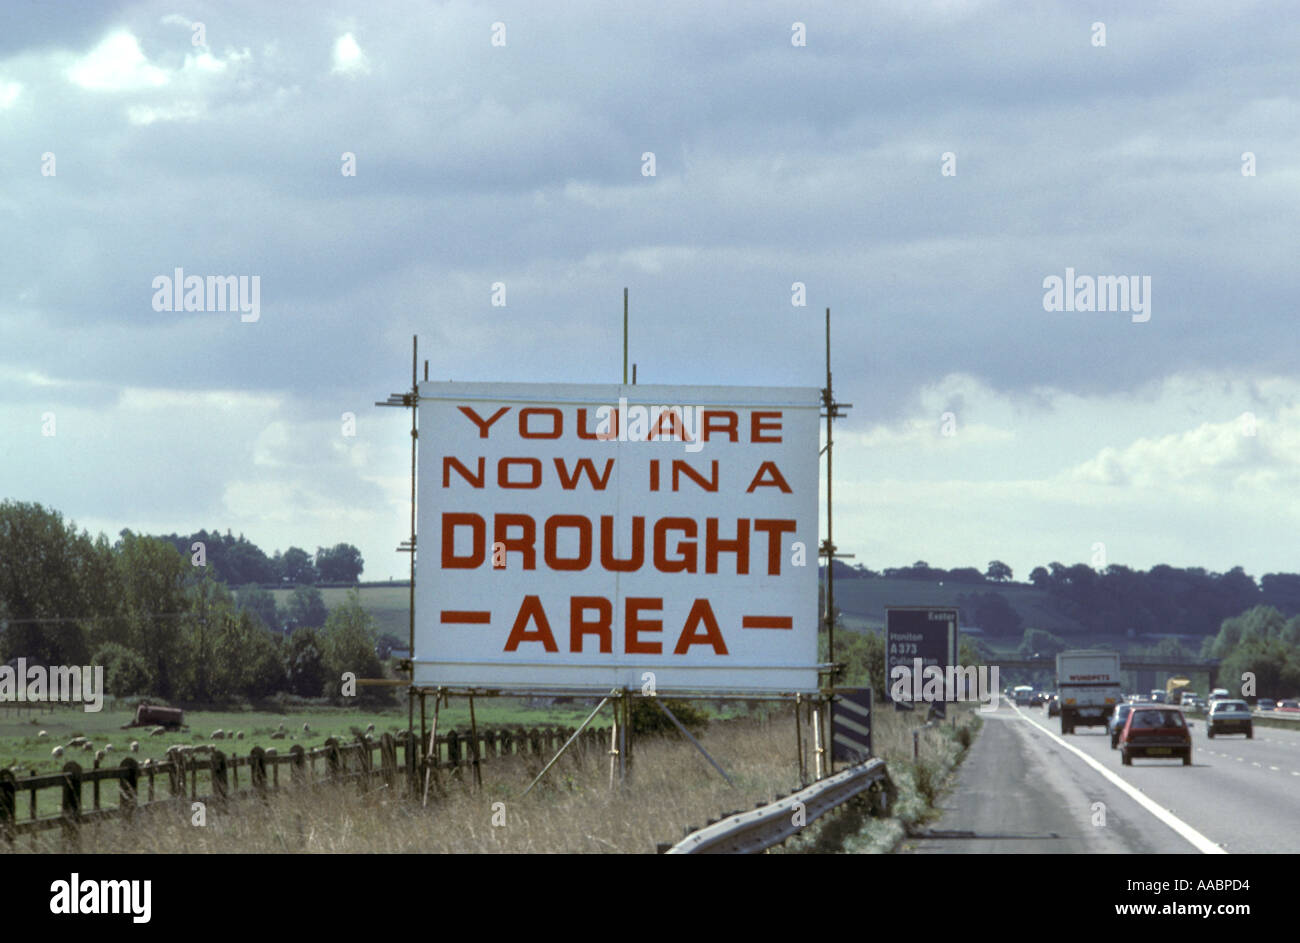 Drought warning sign on M5 motorway near Exeter Devon England circa 1976 - Stock Image